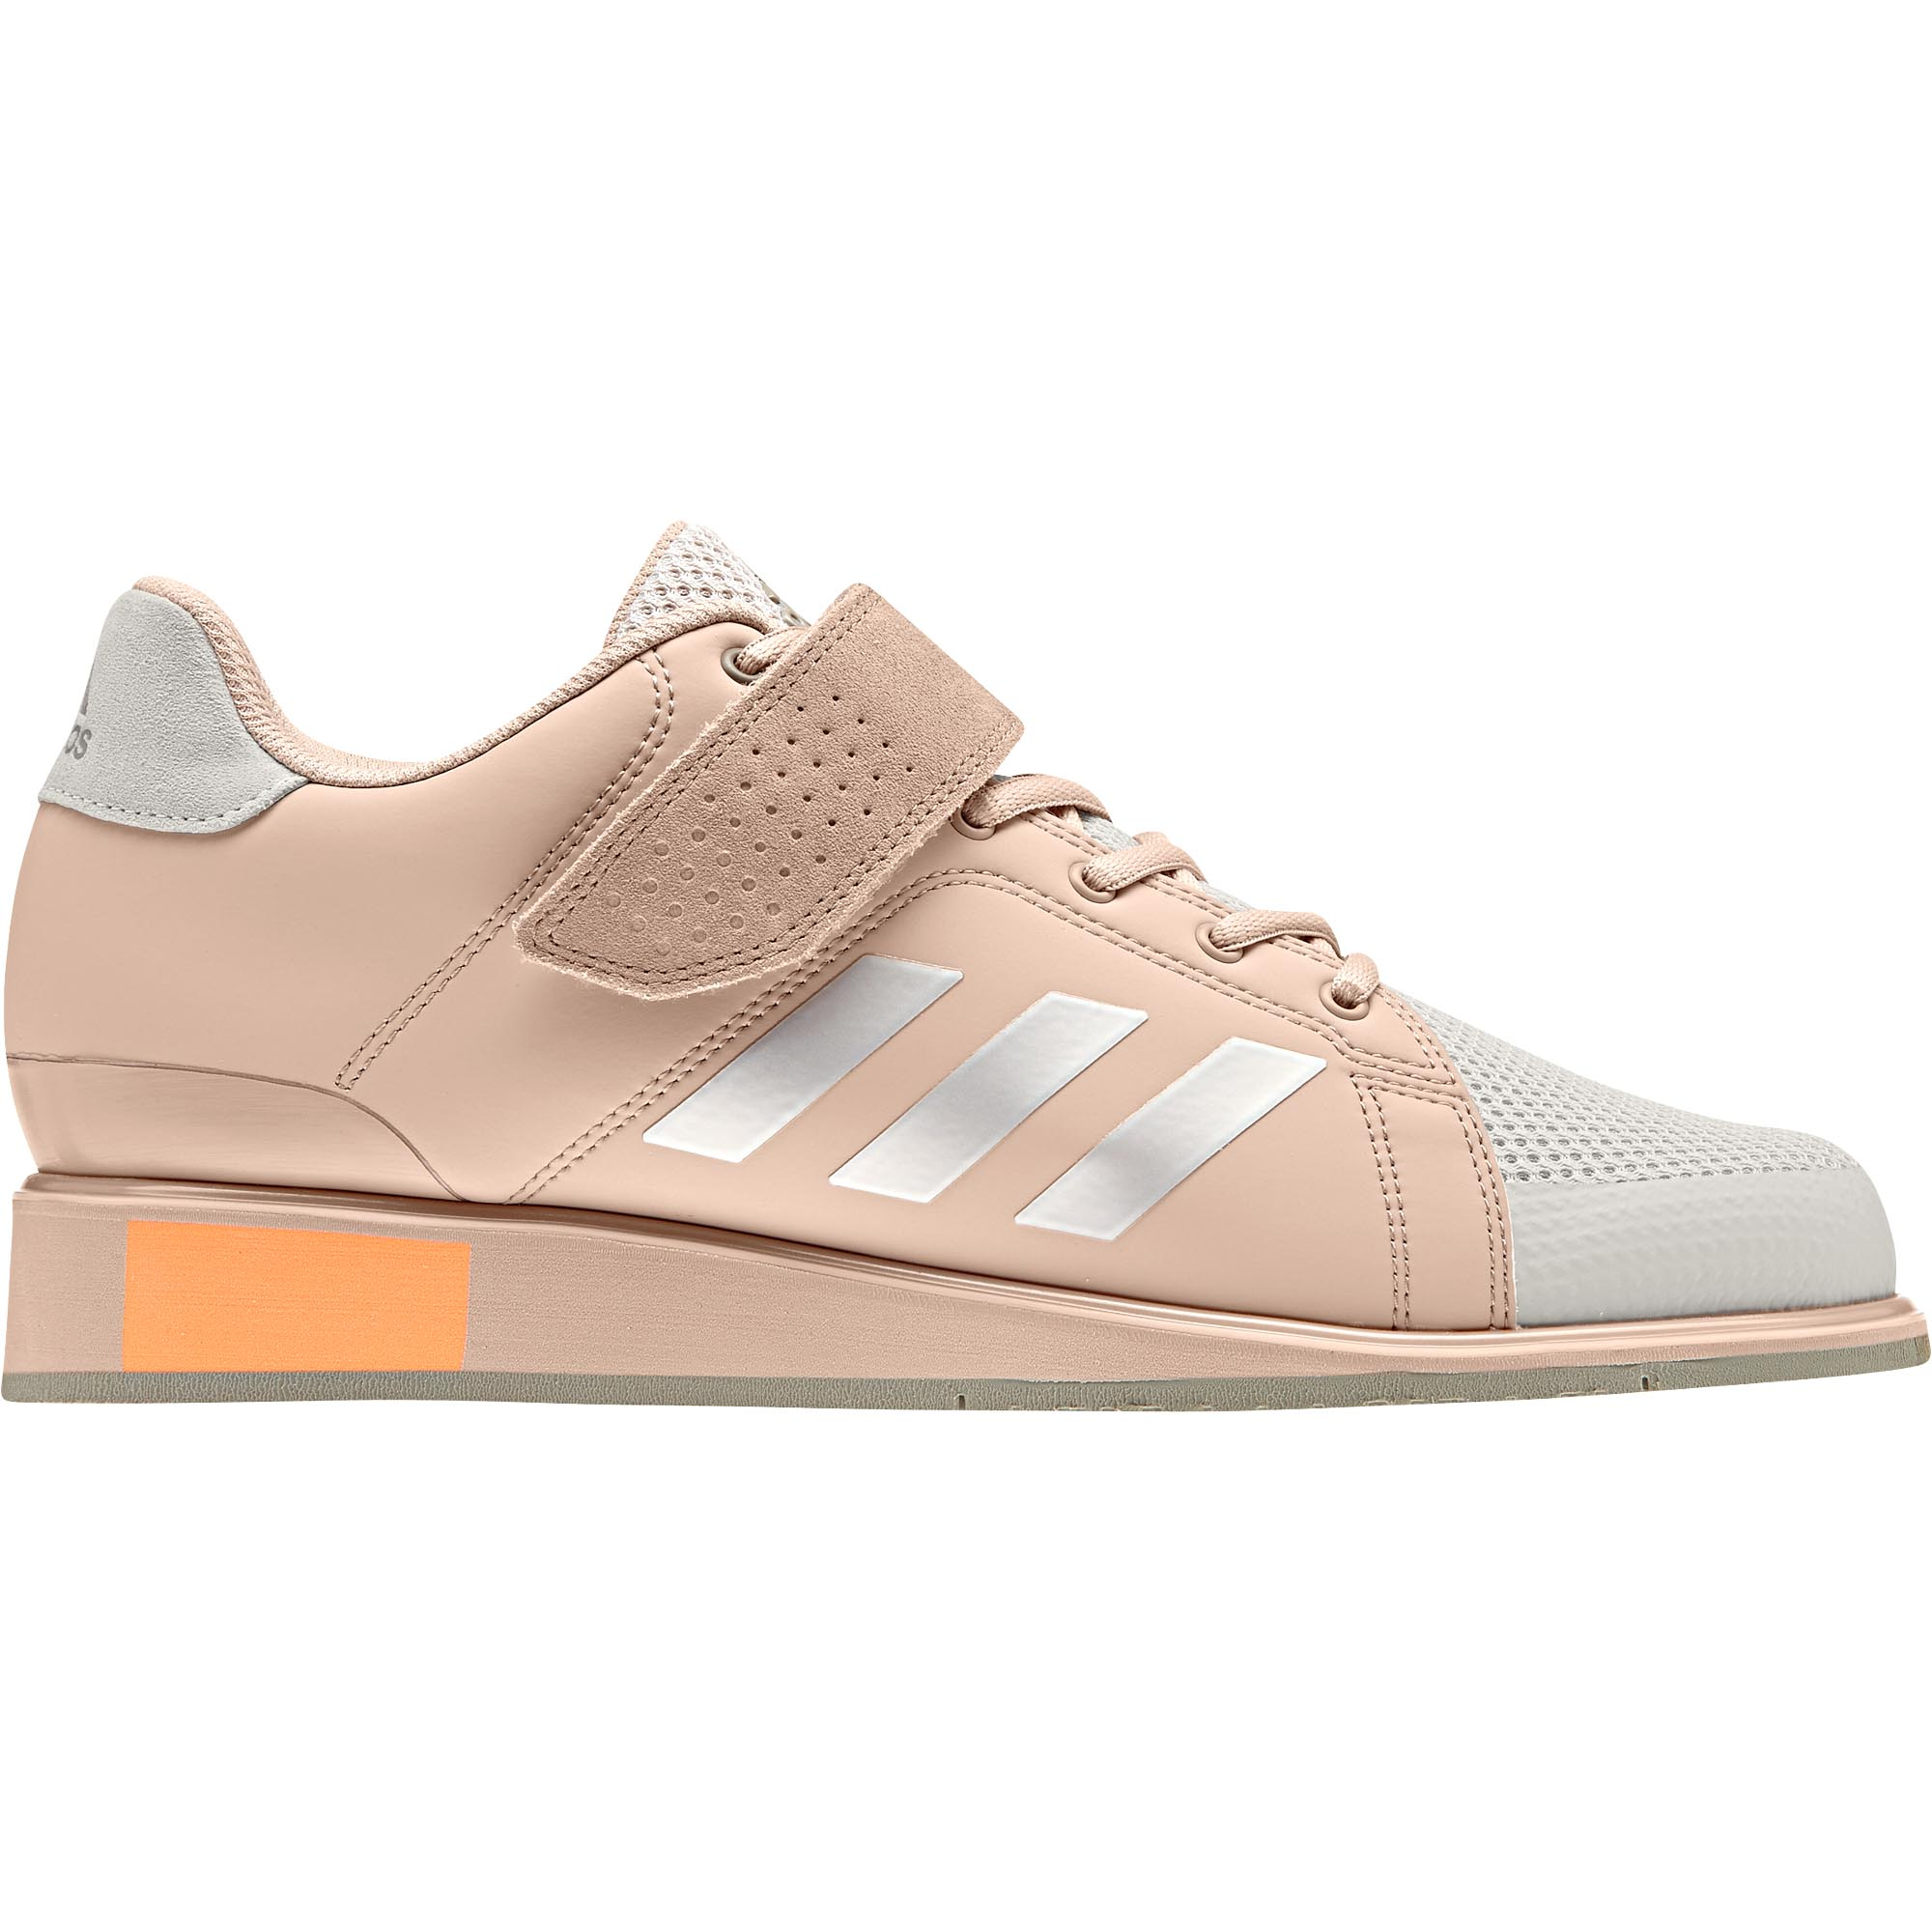 6b51103c43ef Details about adidas Power Perfect III Womens Adult Weightlifting Powerlifting  Shoe Pink/Pearl